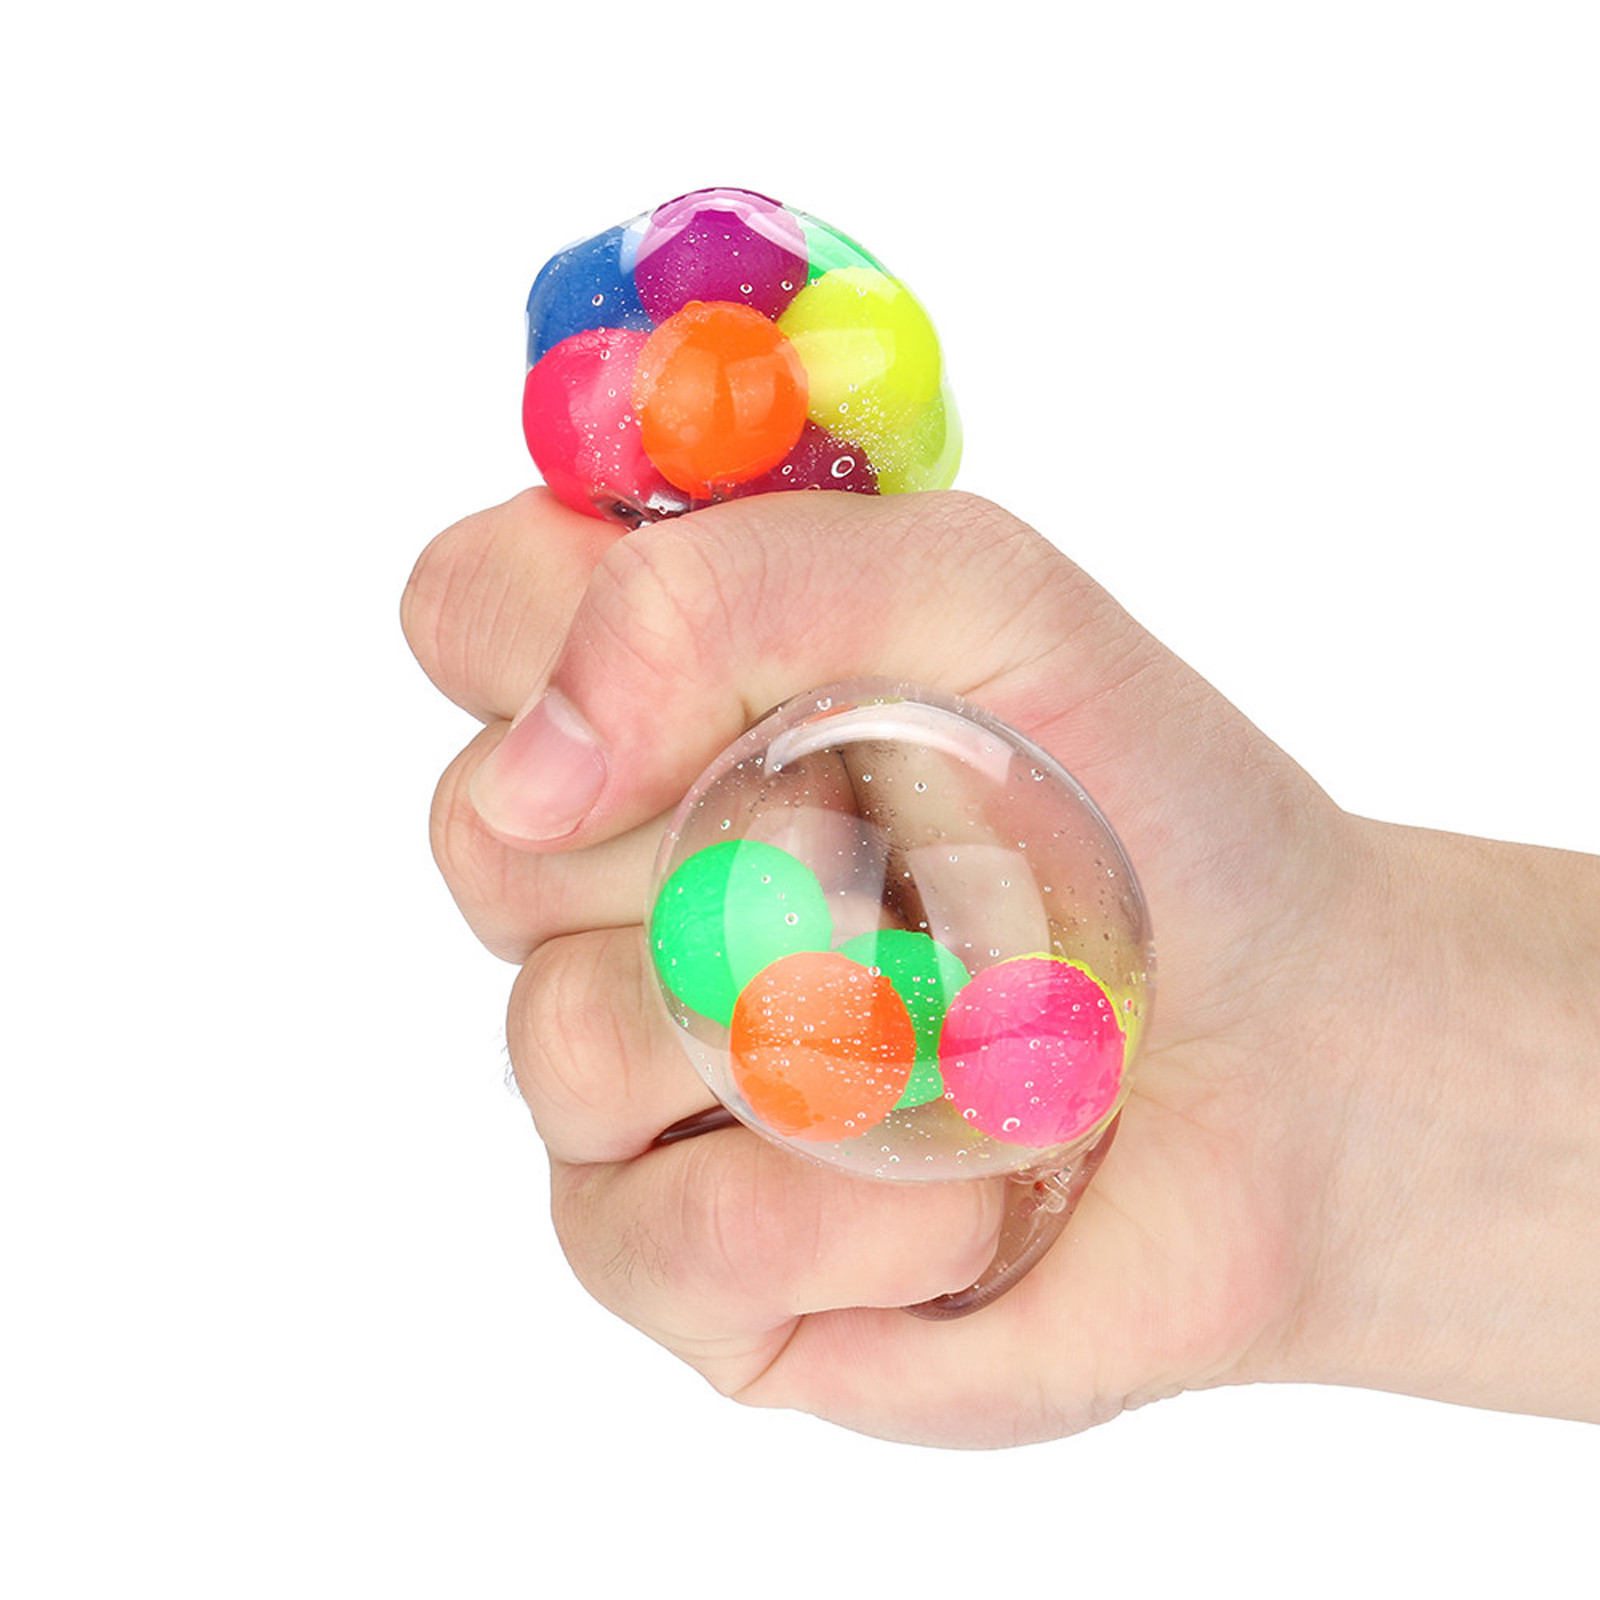 Figet Toys Stress-Ball Popit Pressure-Ball-Stress Reliever Color-Sensory 2PCS Office img4